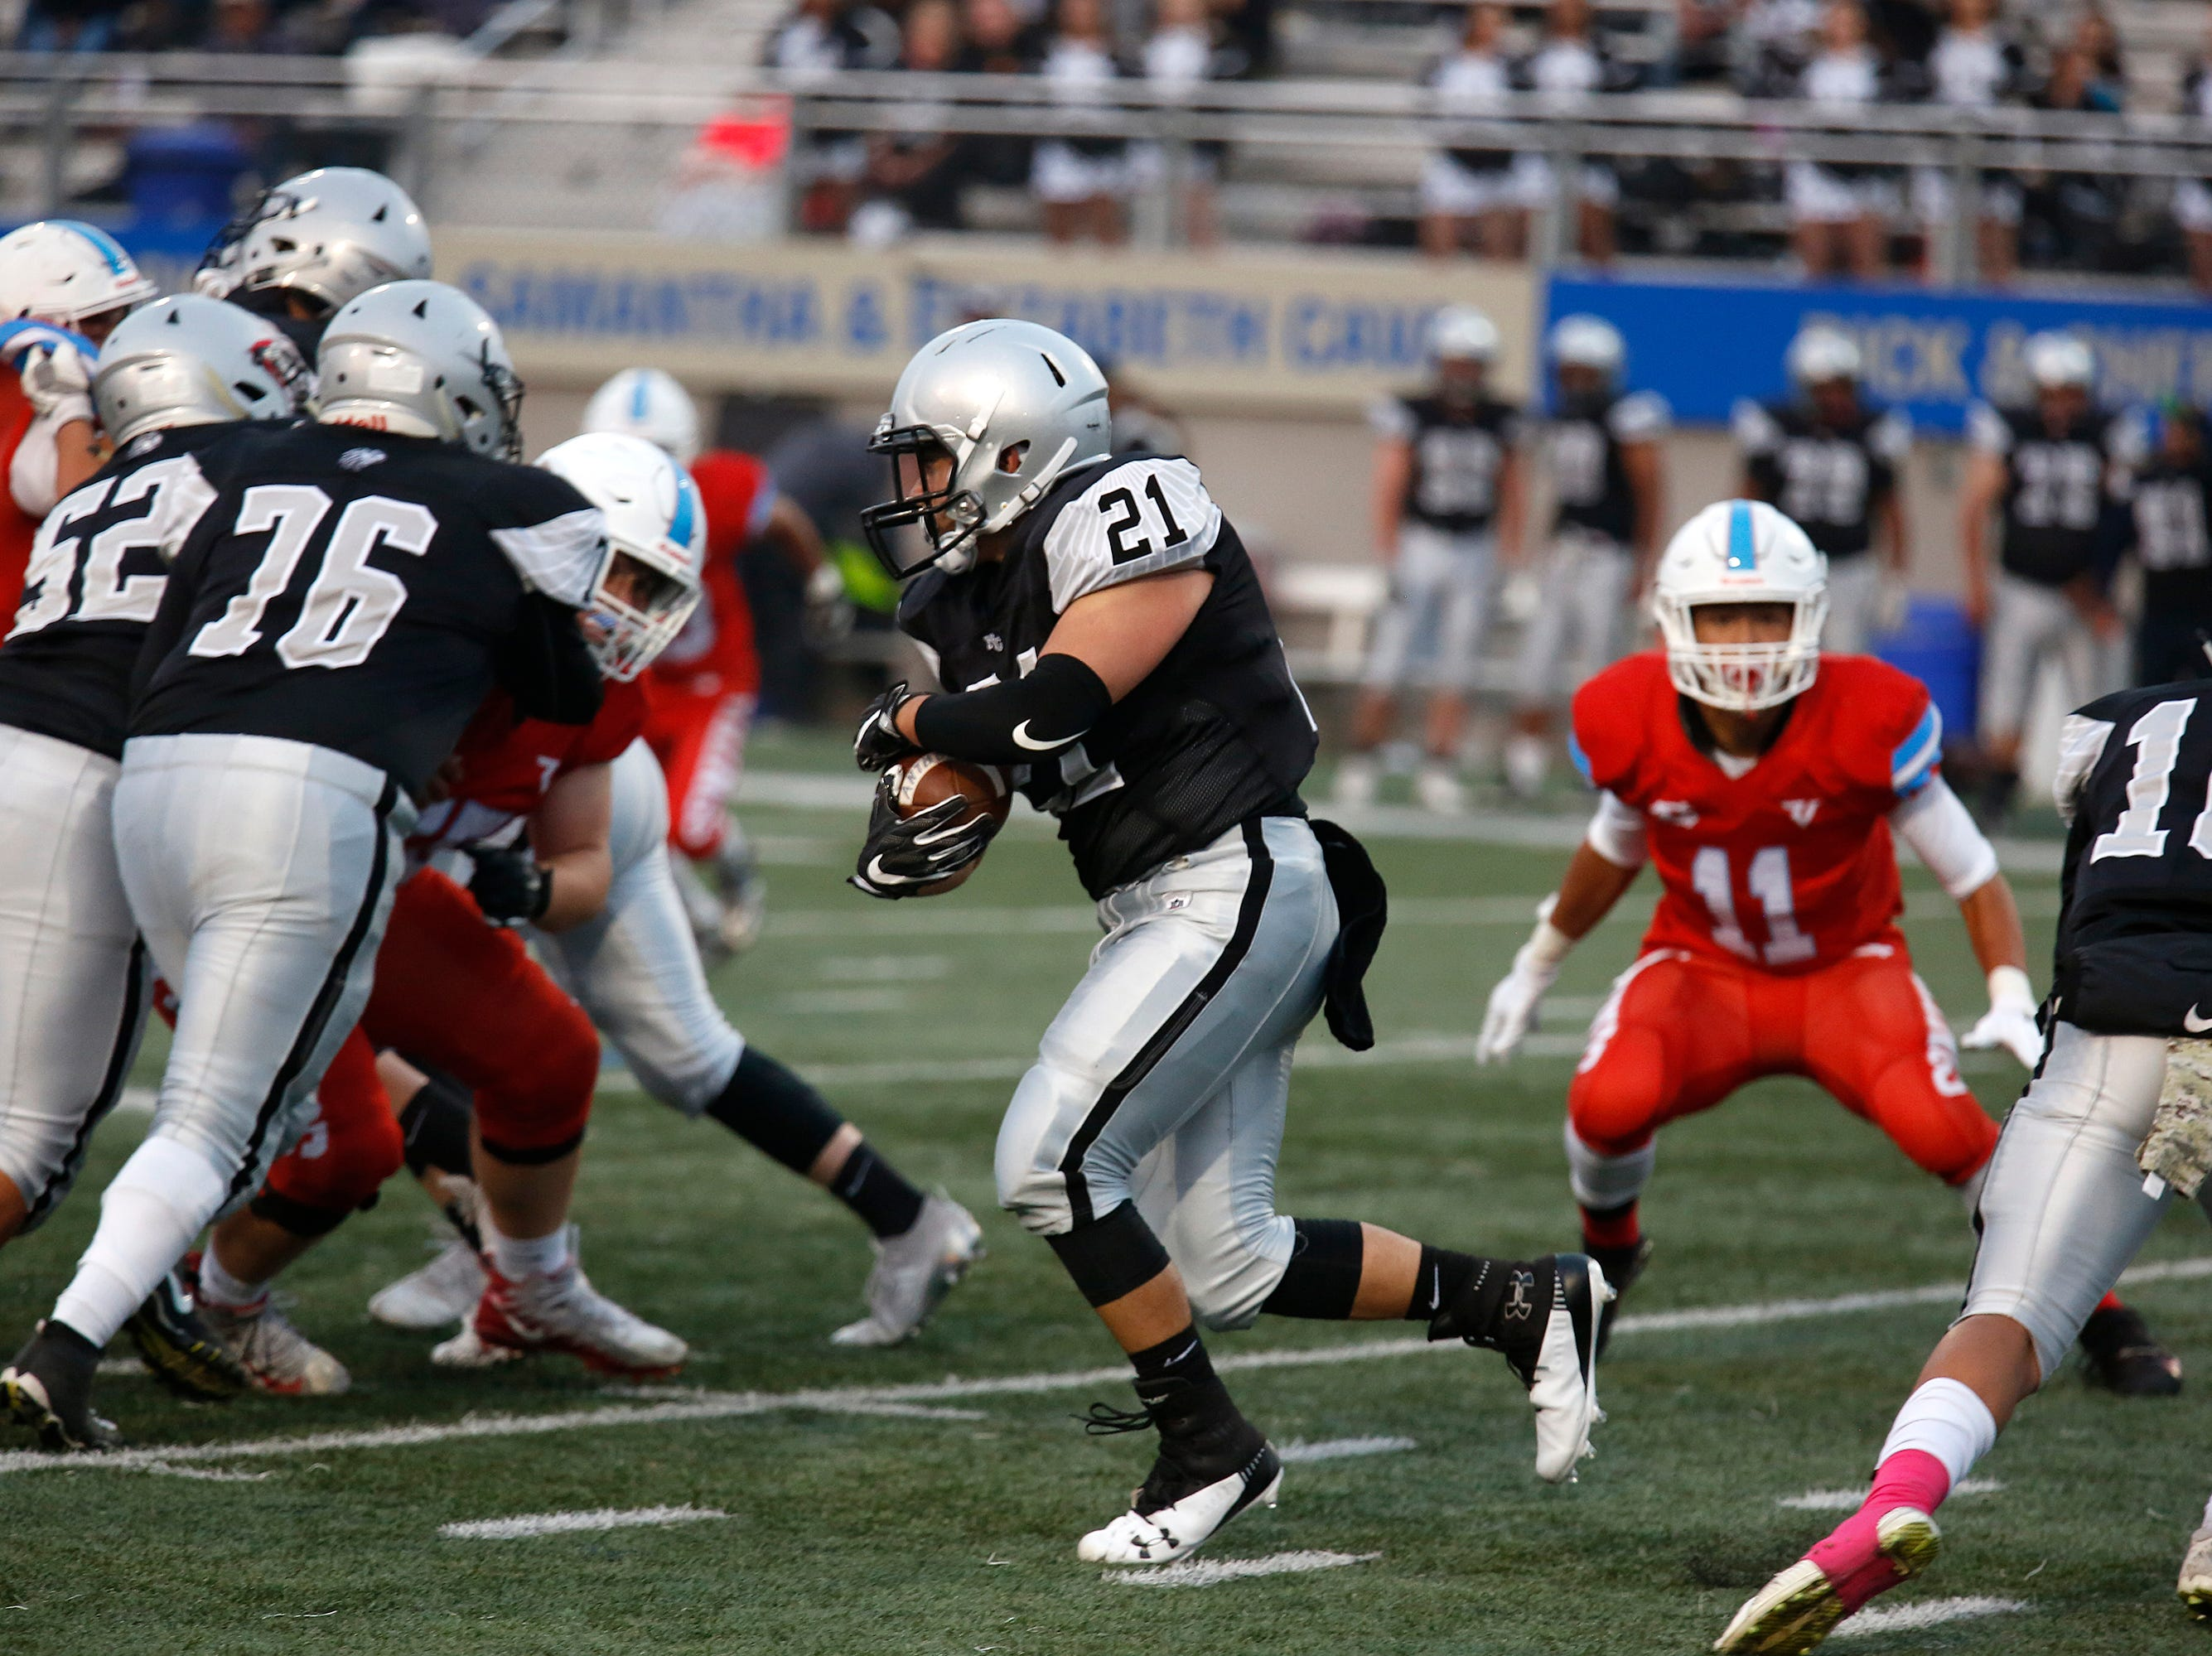 North Monterey County's Andrew Jara-Rodriguez finds an opening against North Salinas during football at Rabobank Stadium in Salinas on Thursday August 23, 2018.